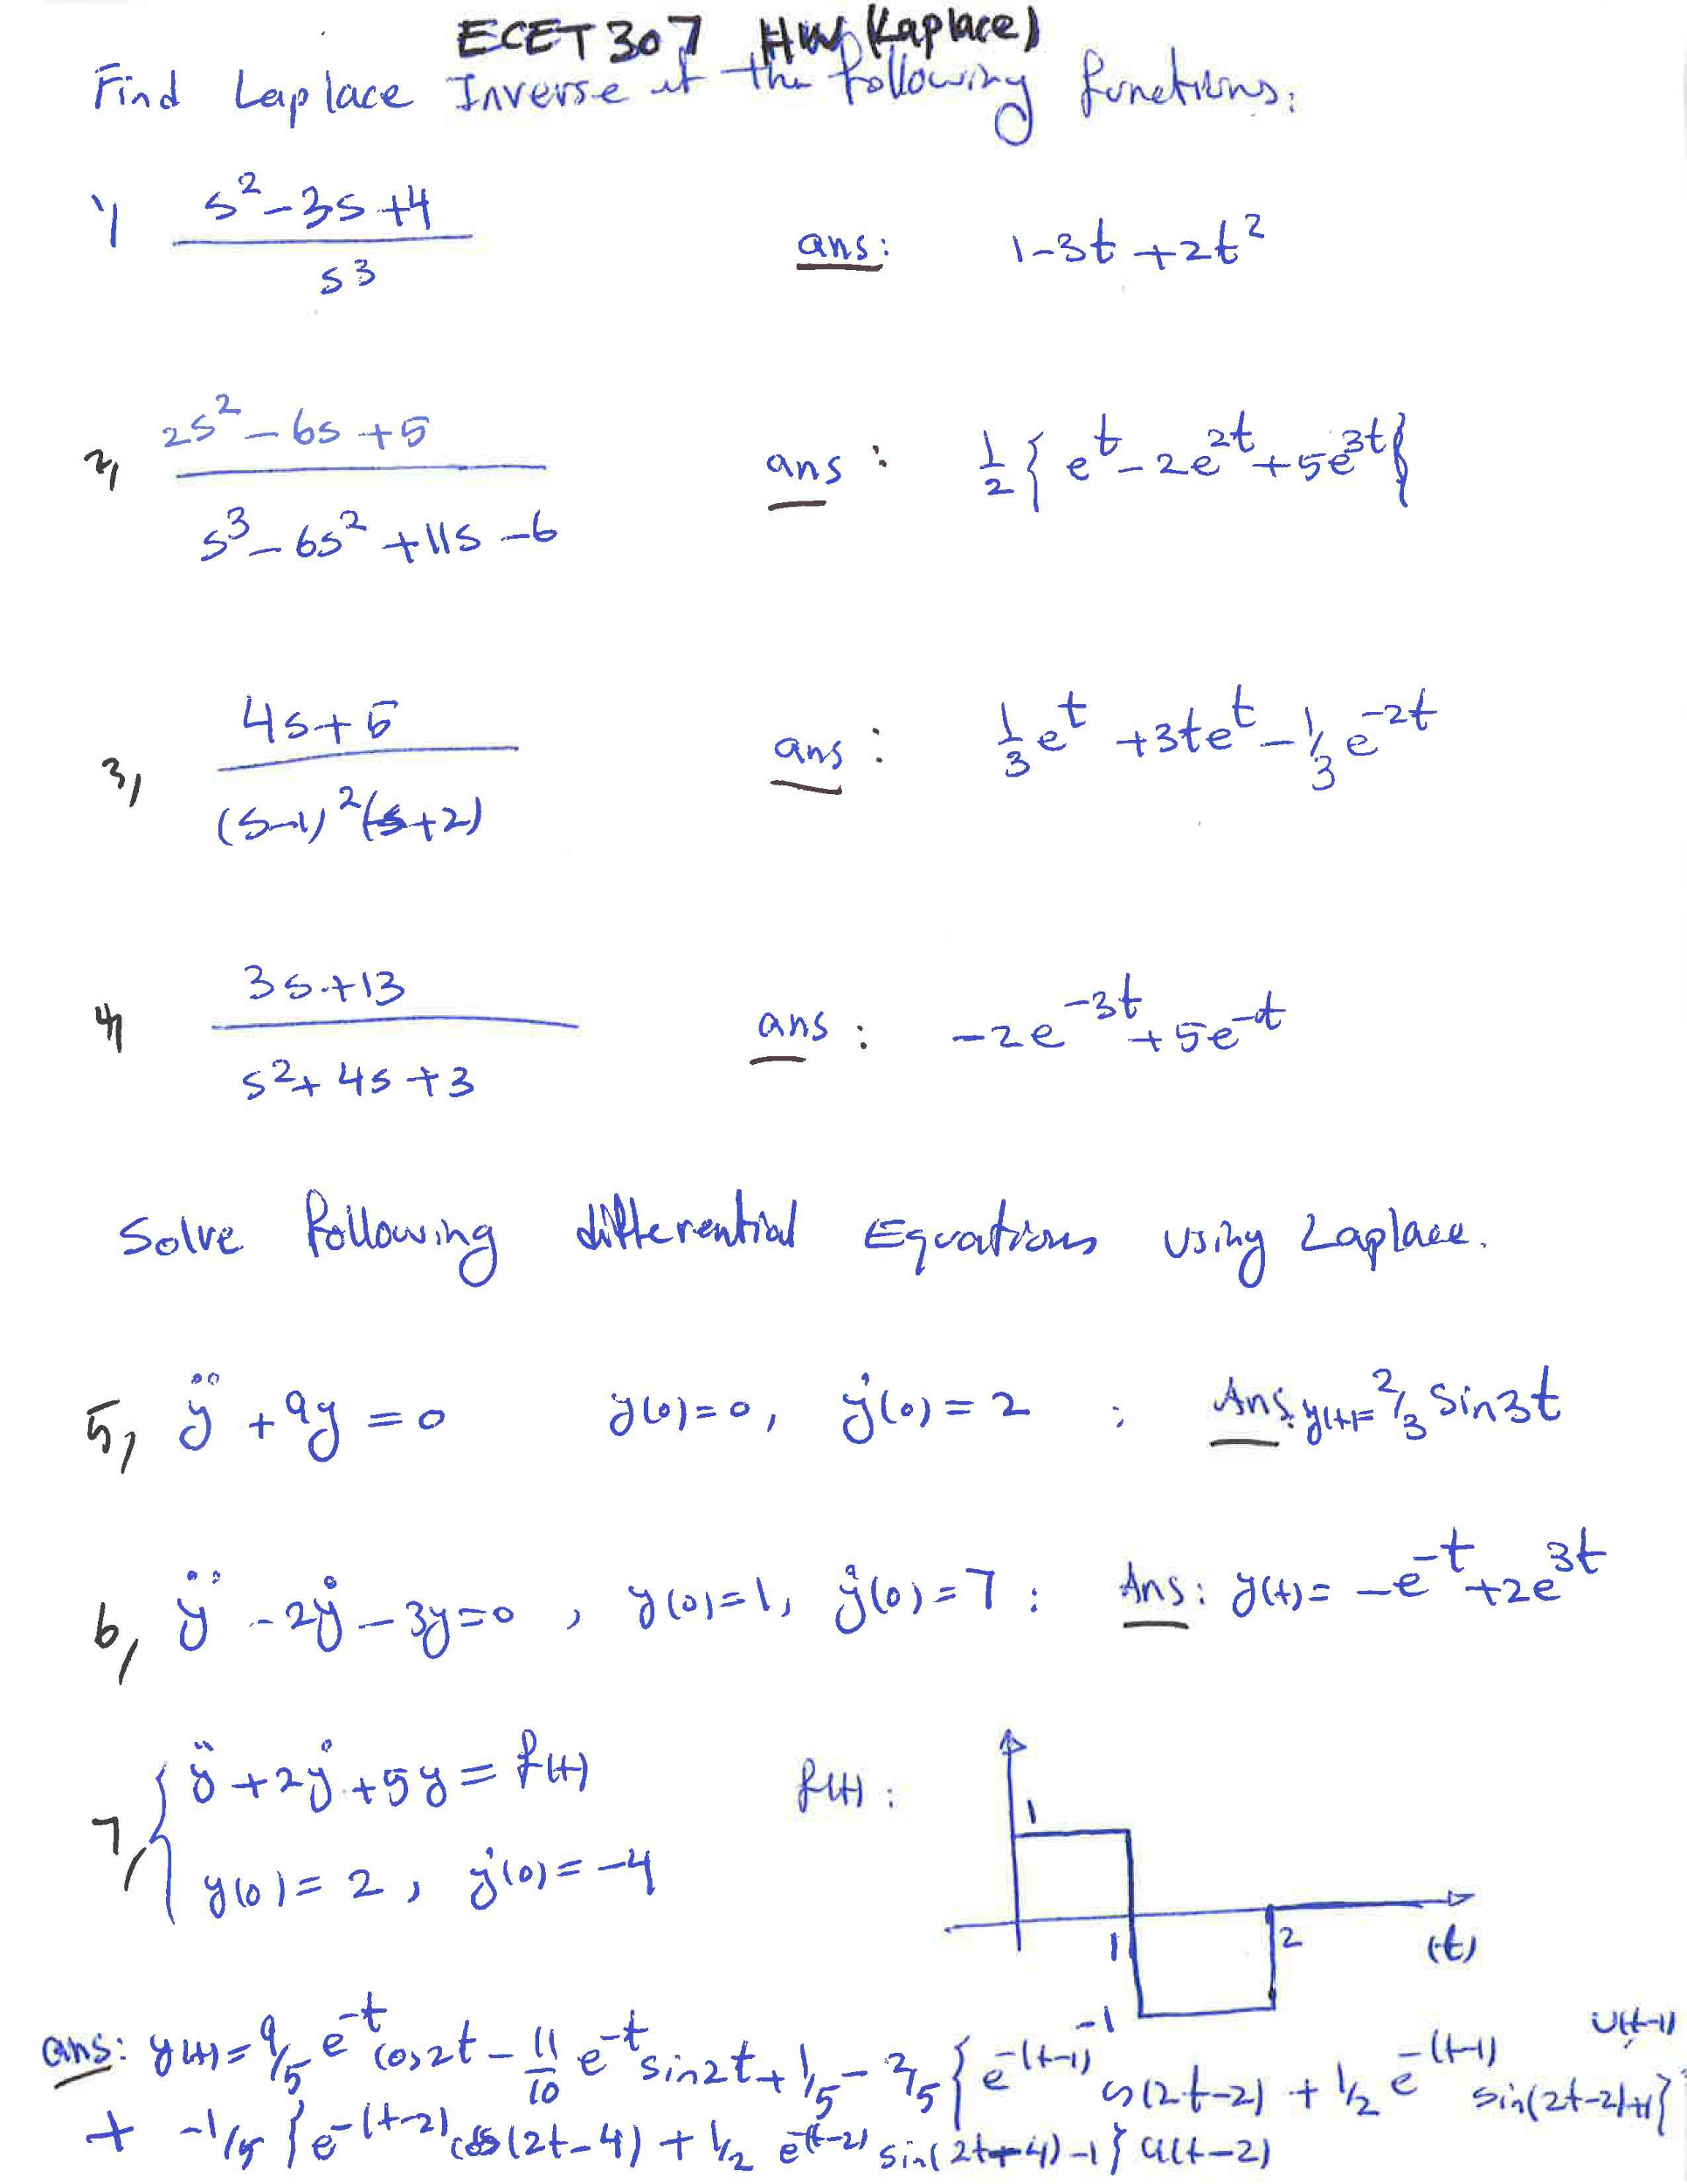 Find Laplace Inverse of the following function: s